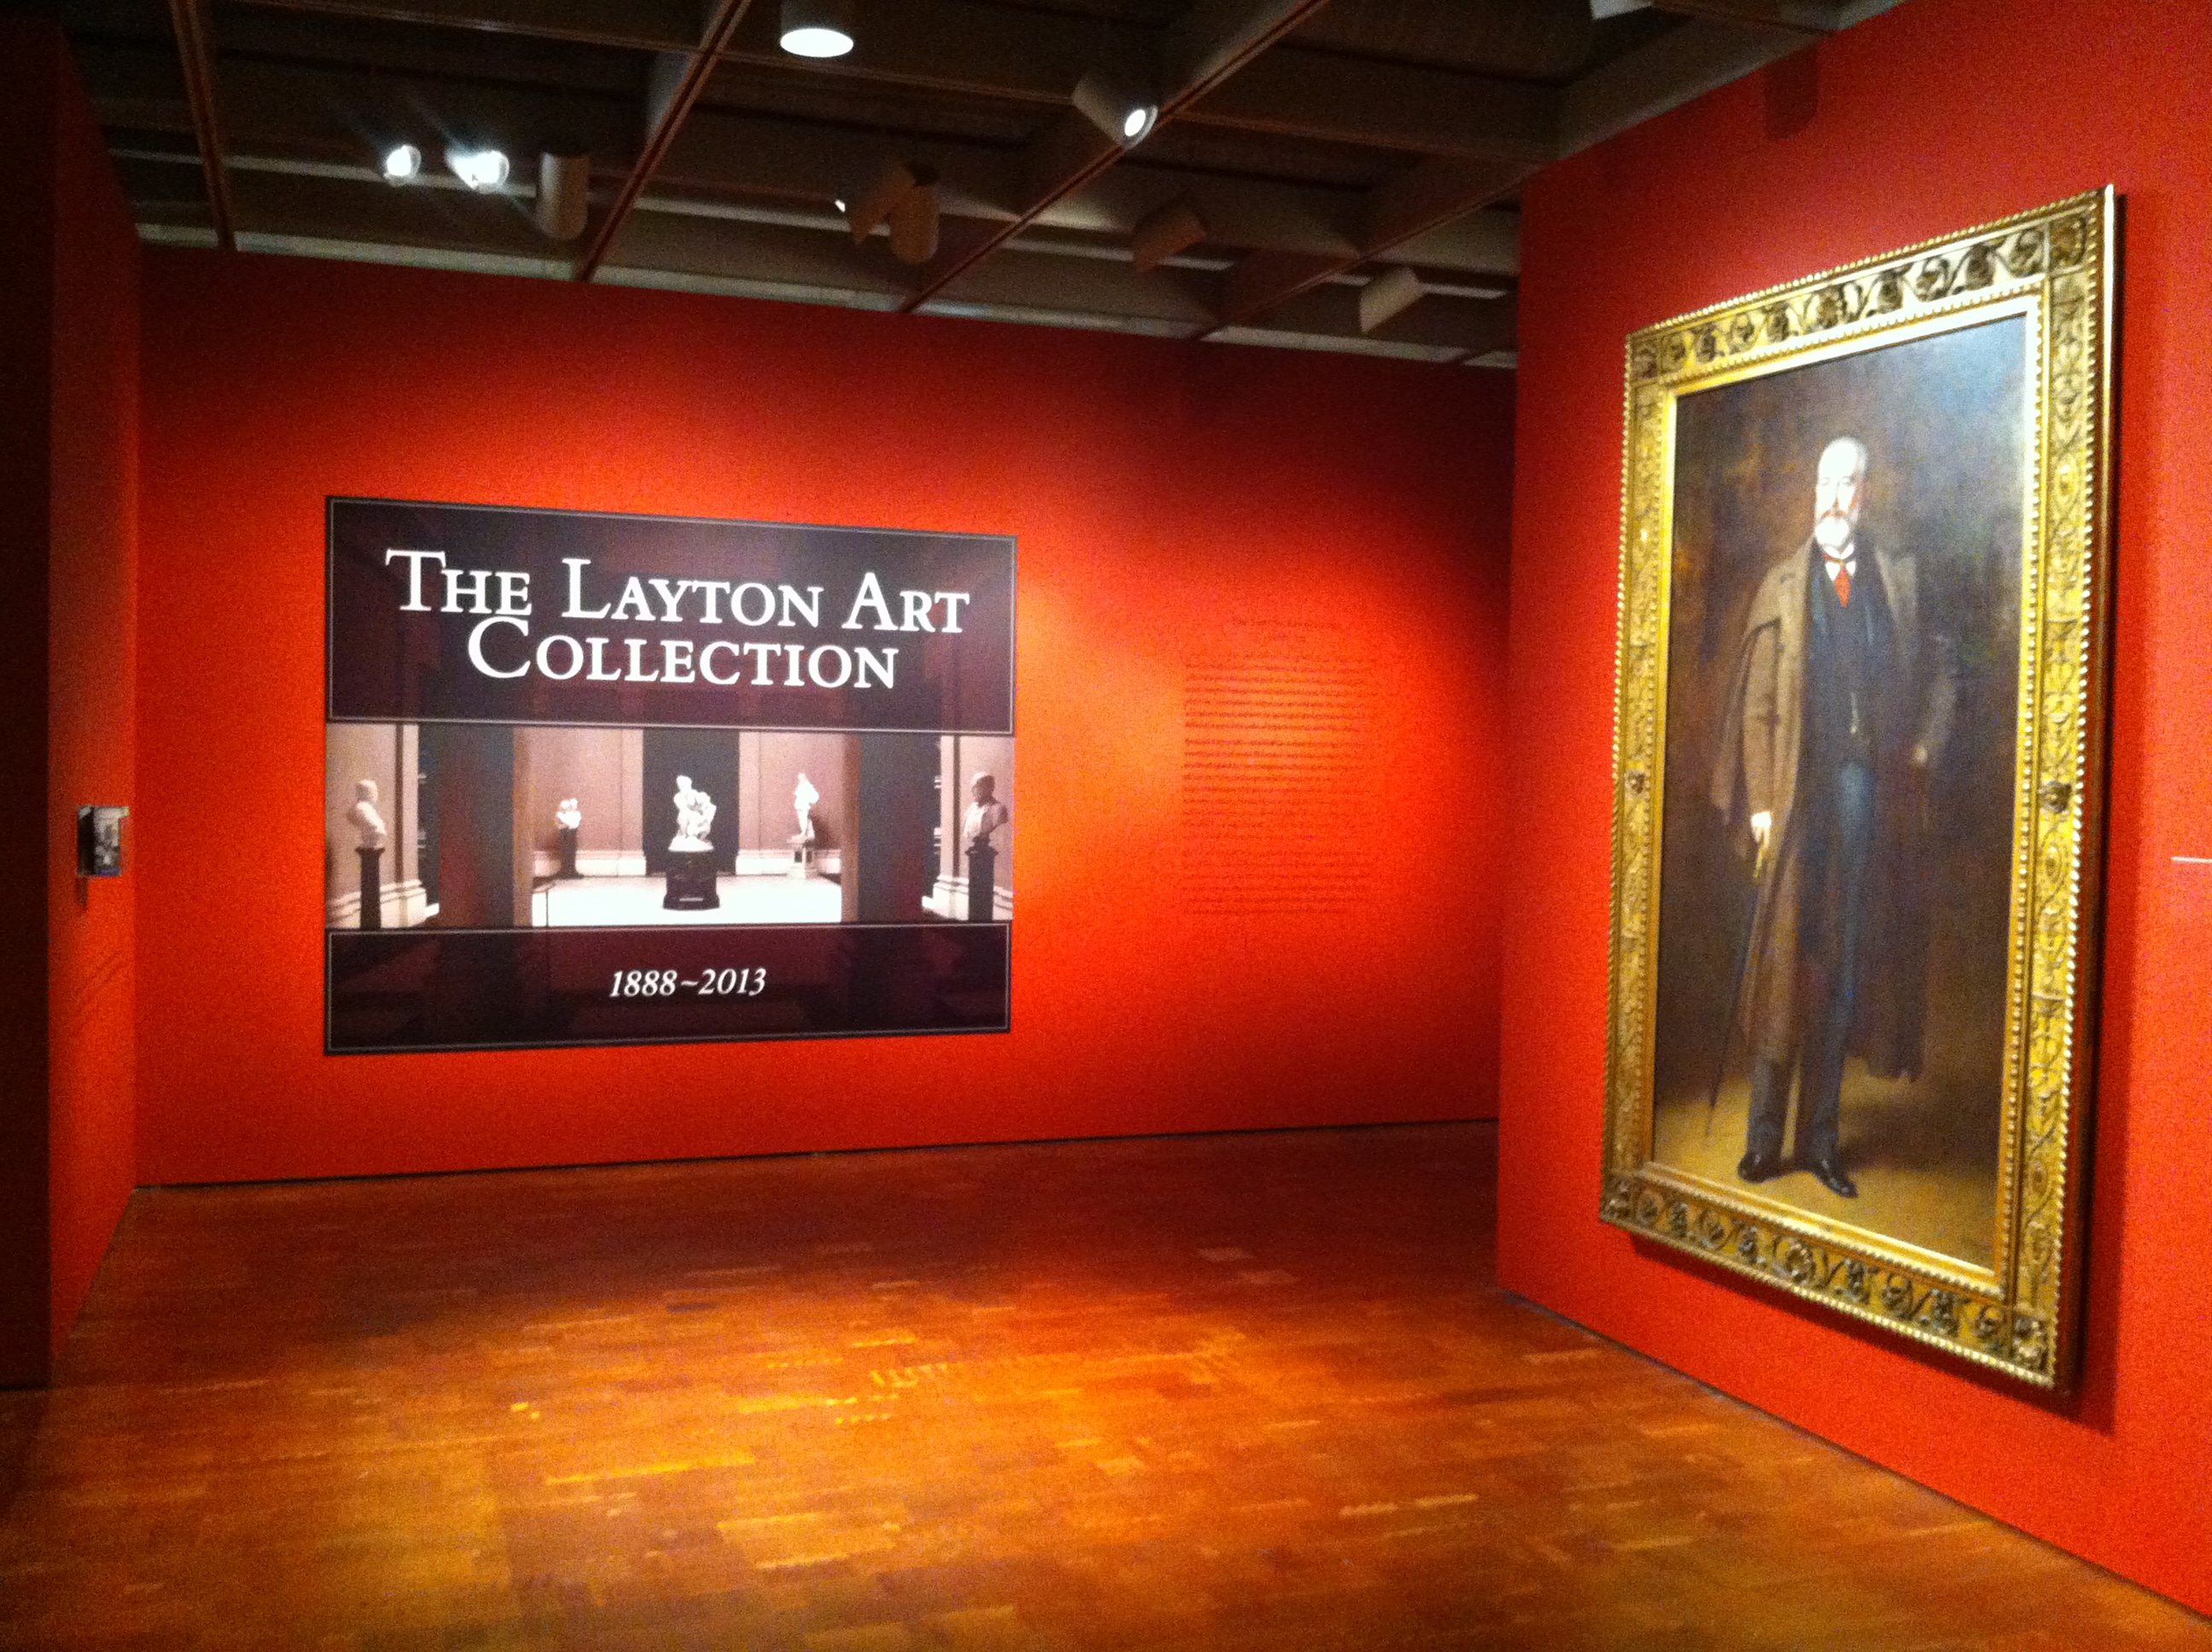 Remodel Ordinary Wall Into Nice Wall Gallery Art: The Layton Art Collection: 1888-2013, Part 1